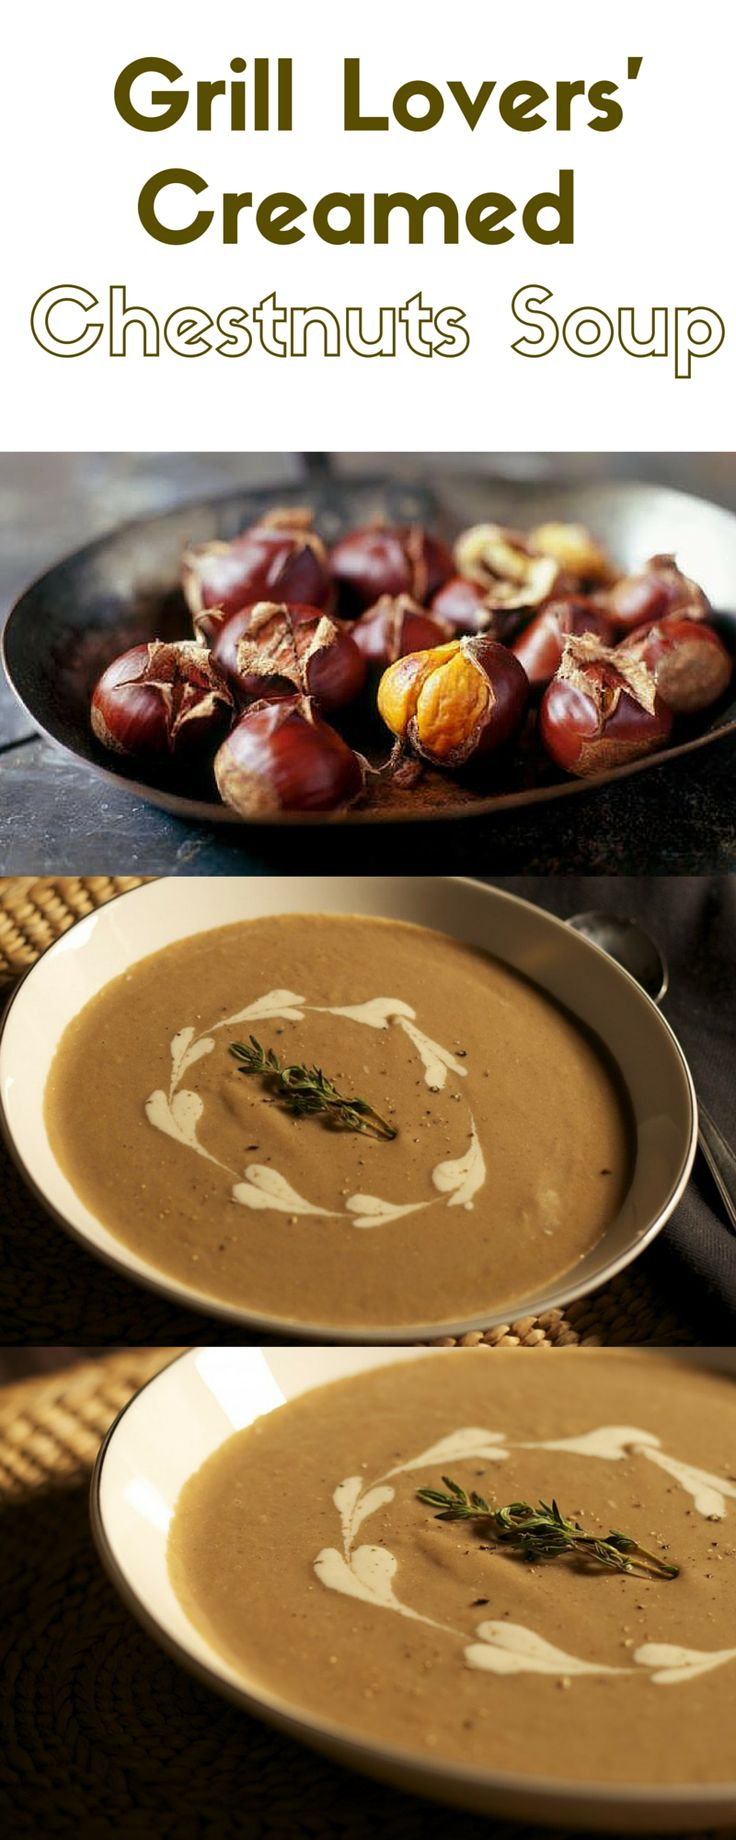 Grill Lovers' Amazing Creamed Chestnuts Soup Recipe   #recipes #foodporn #foodie